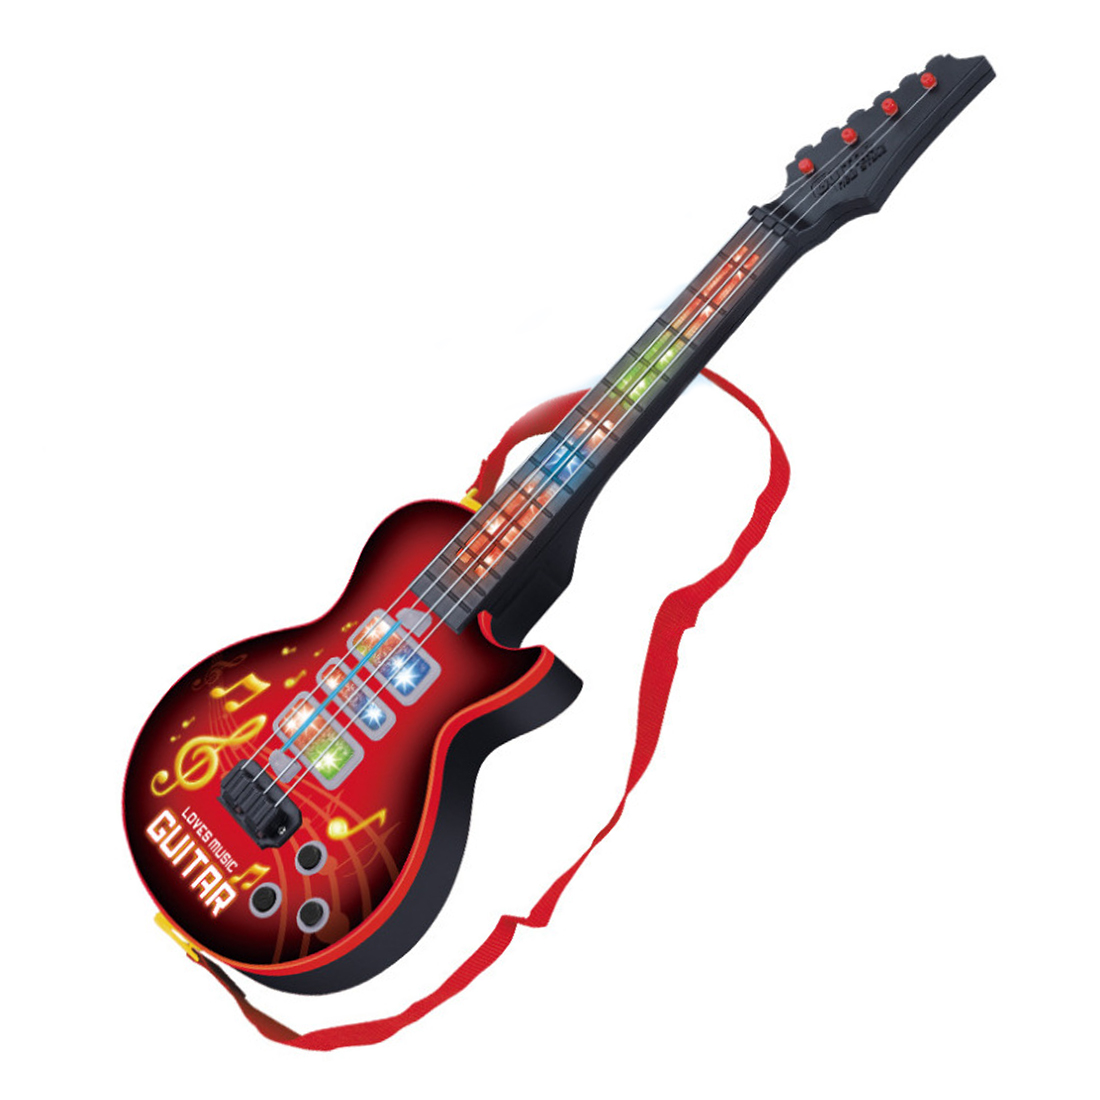 Hiqh Quality 4 Strings Music Electric Guitar Kids Musical Instruments Educational Toys For Children juguetes As New Year Gift otamatone toy music instruments for kids with 8 built in songs